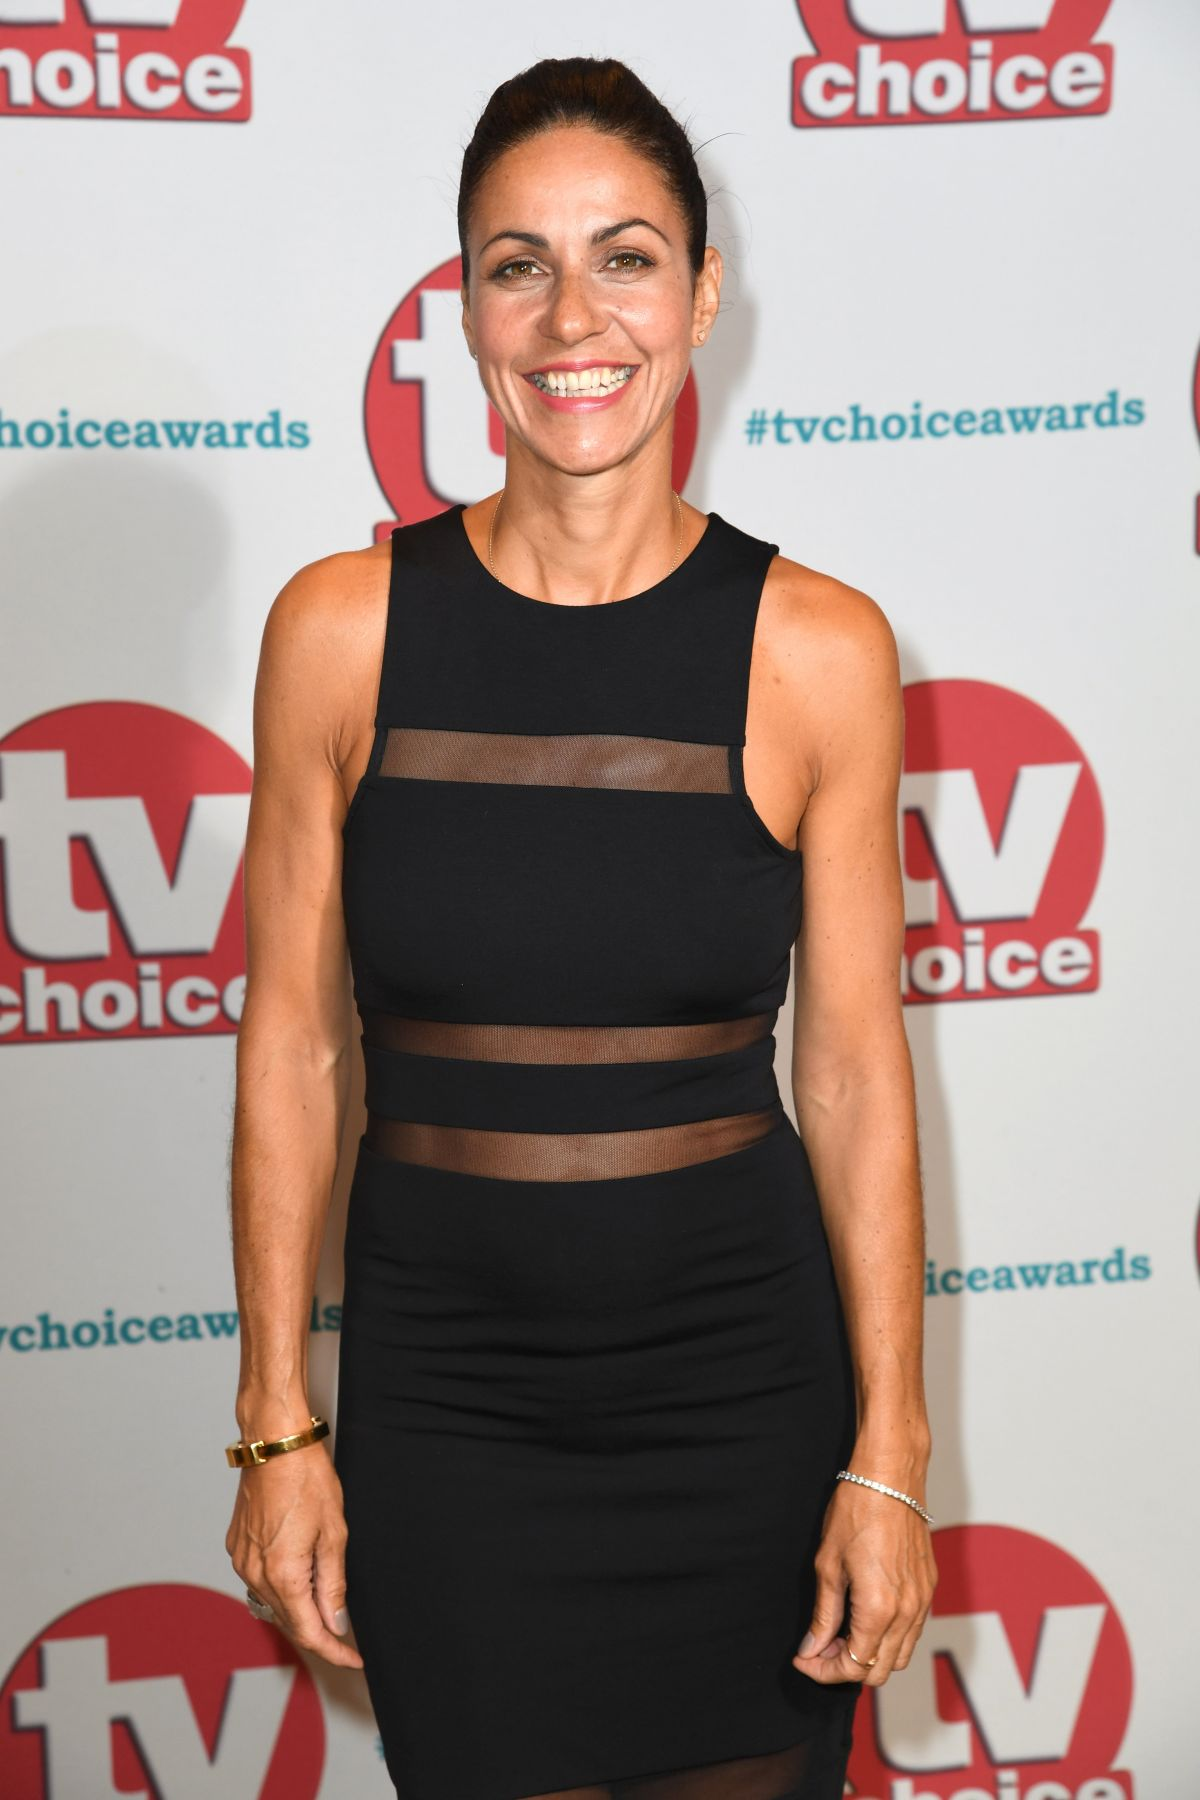 JULIA BRADBURY at TV Choice Awards in London 09/04/2017